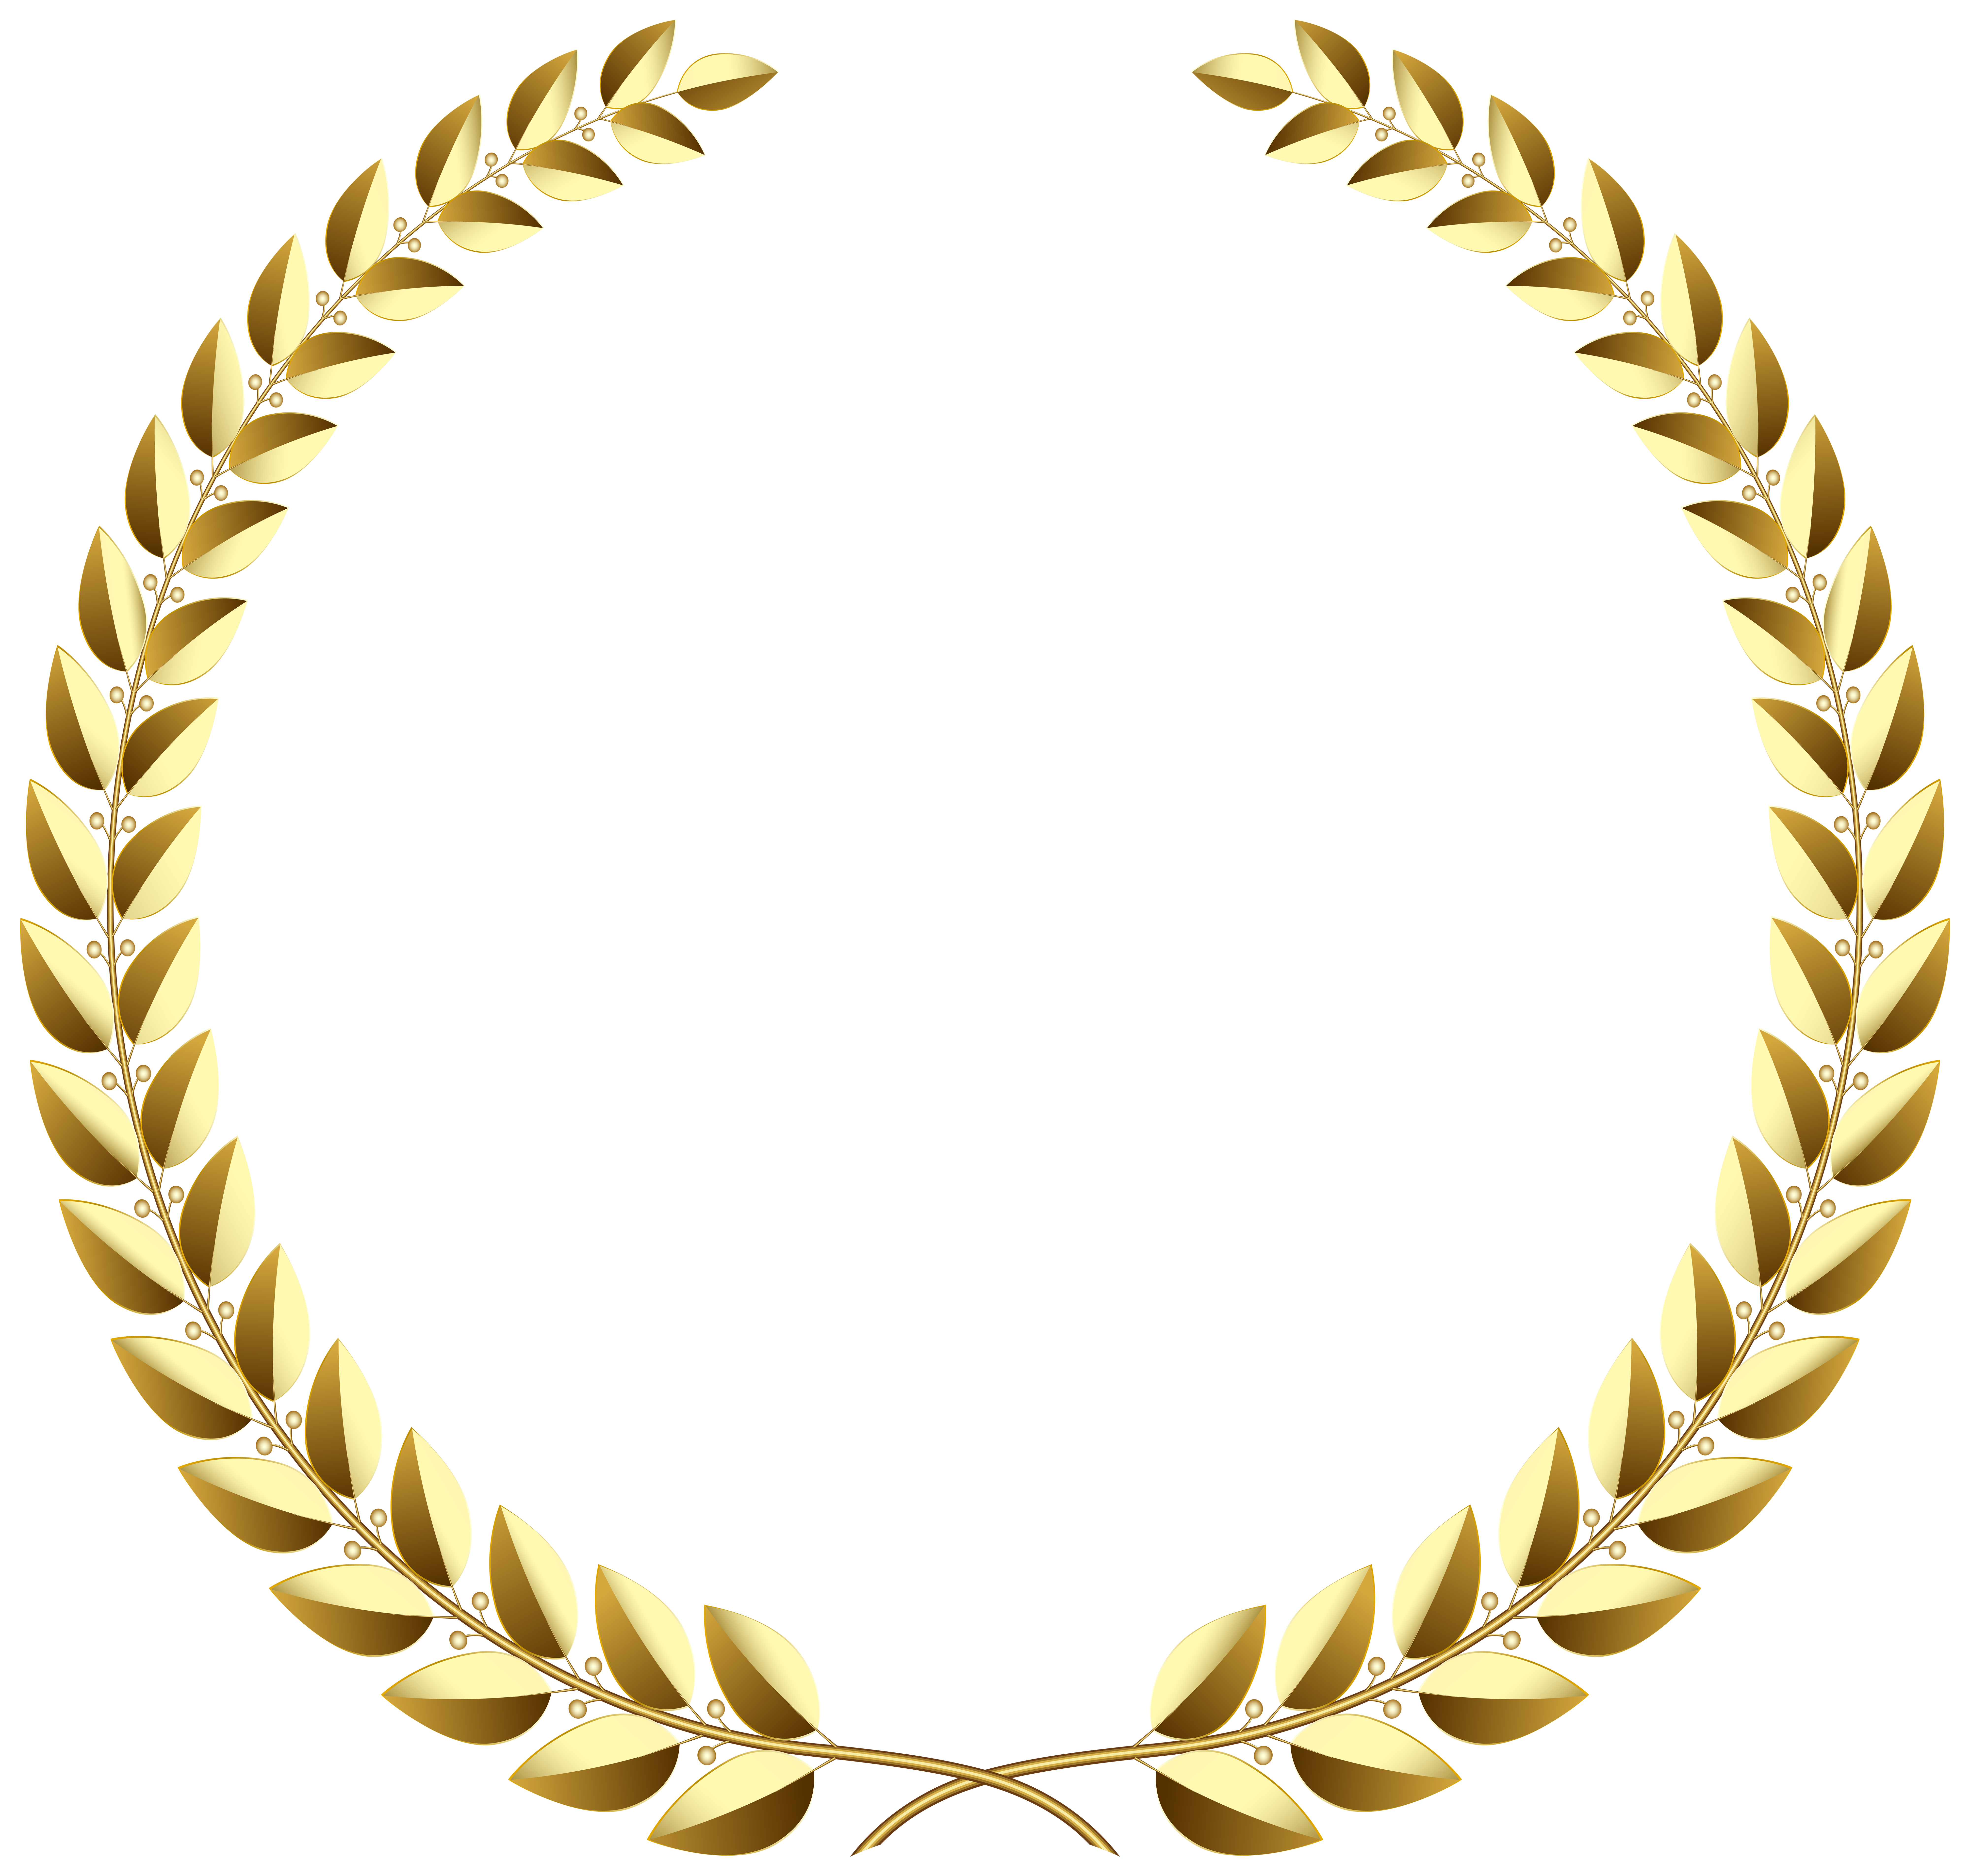 Golden Wreath Clipart 20 Free Cliparts